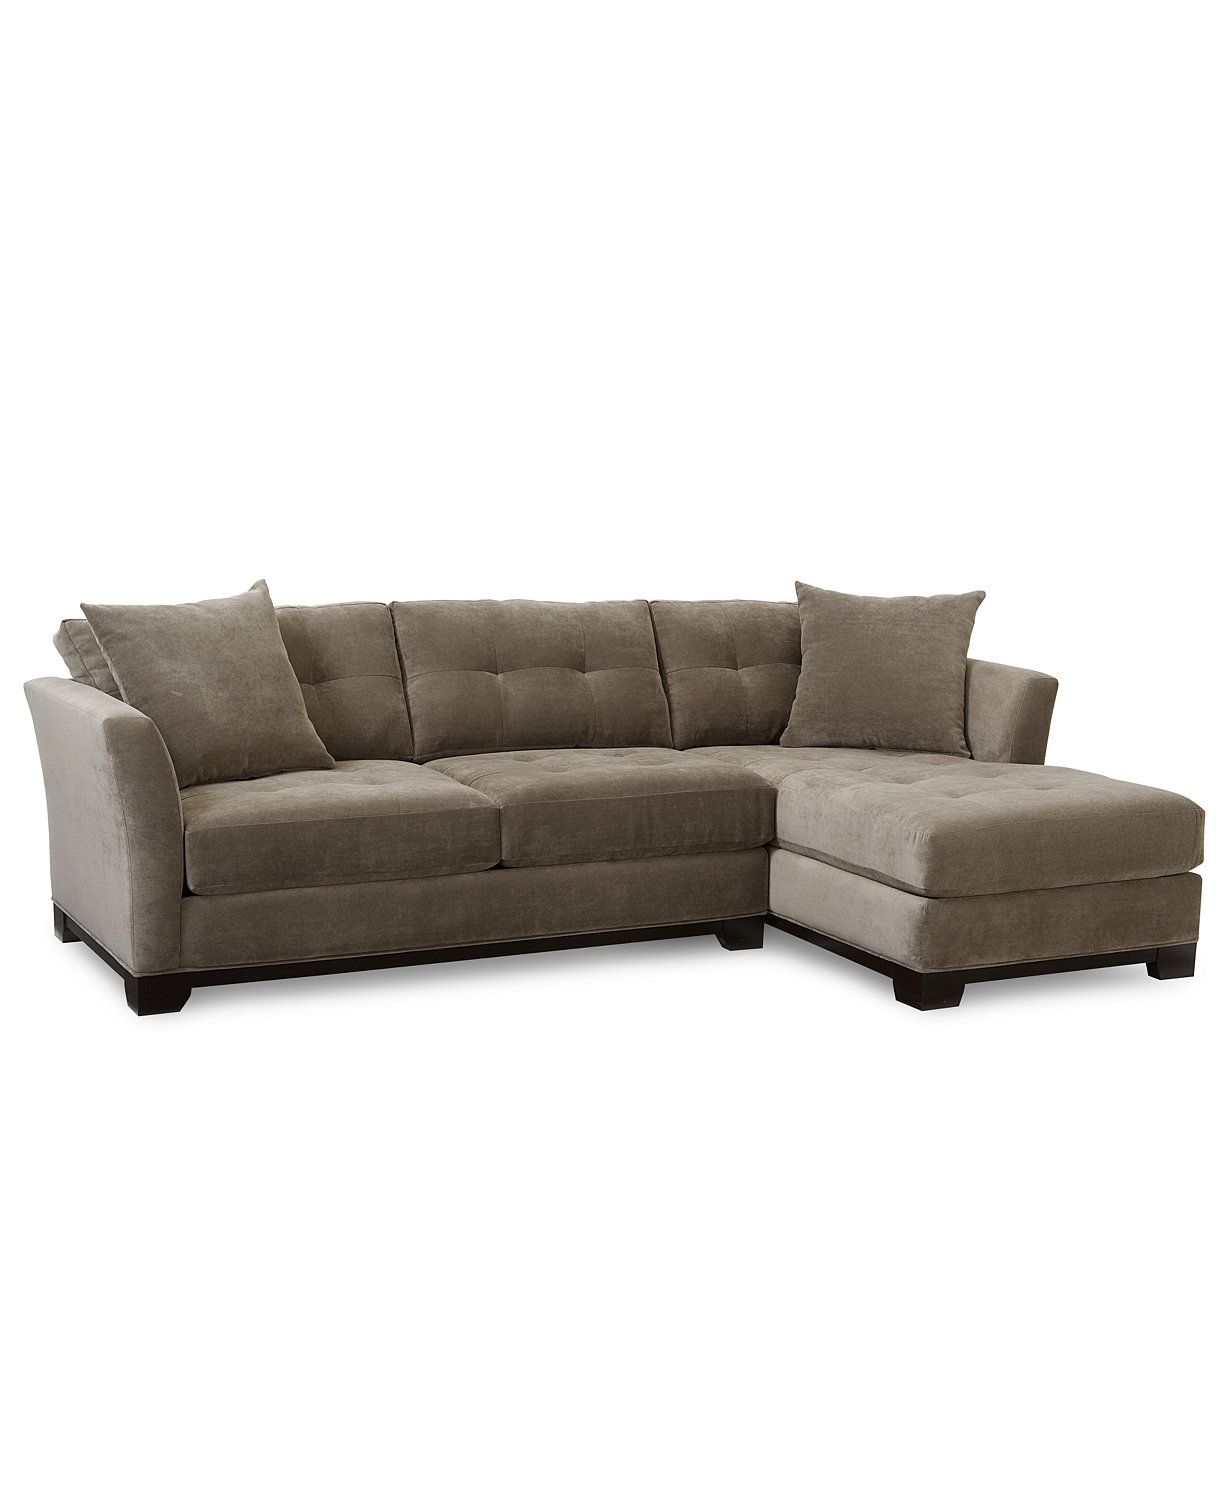 closeout elliot fabric microfiber 2 pc chaise sectional sofa rh pinterest co uk